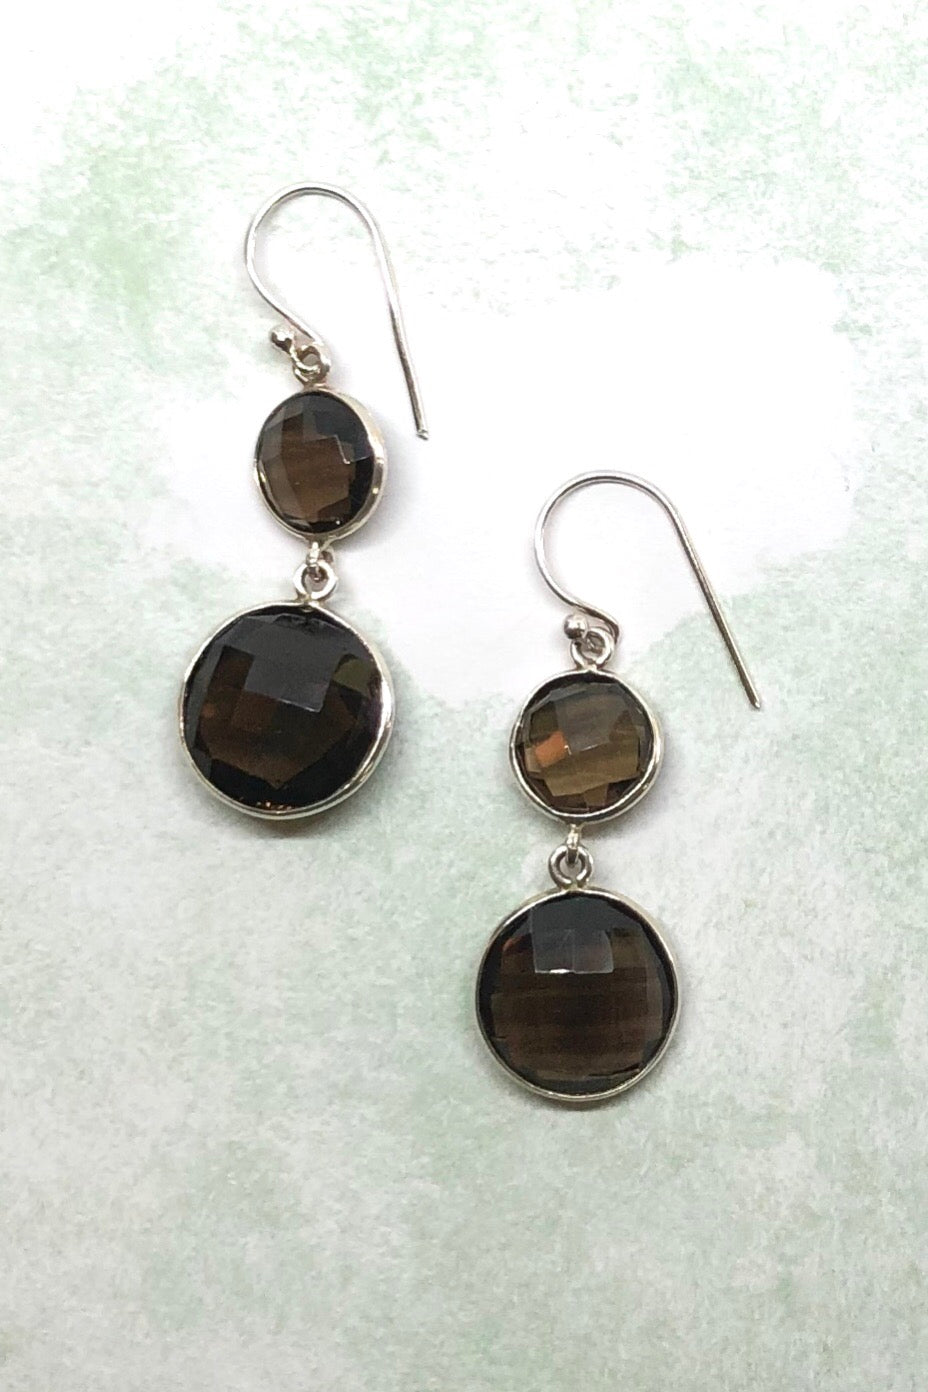 Earrings Smokey Quartz Circles are drop style earrings featuring smokey Quartz gemstones and silver hook fitting.